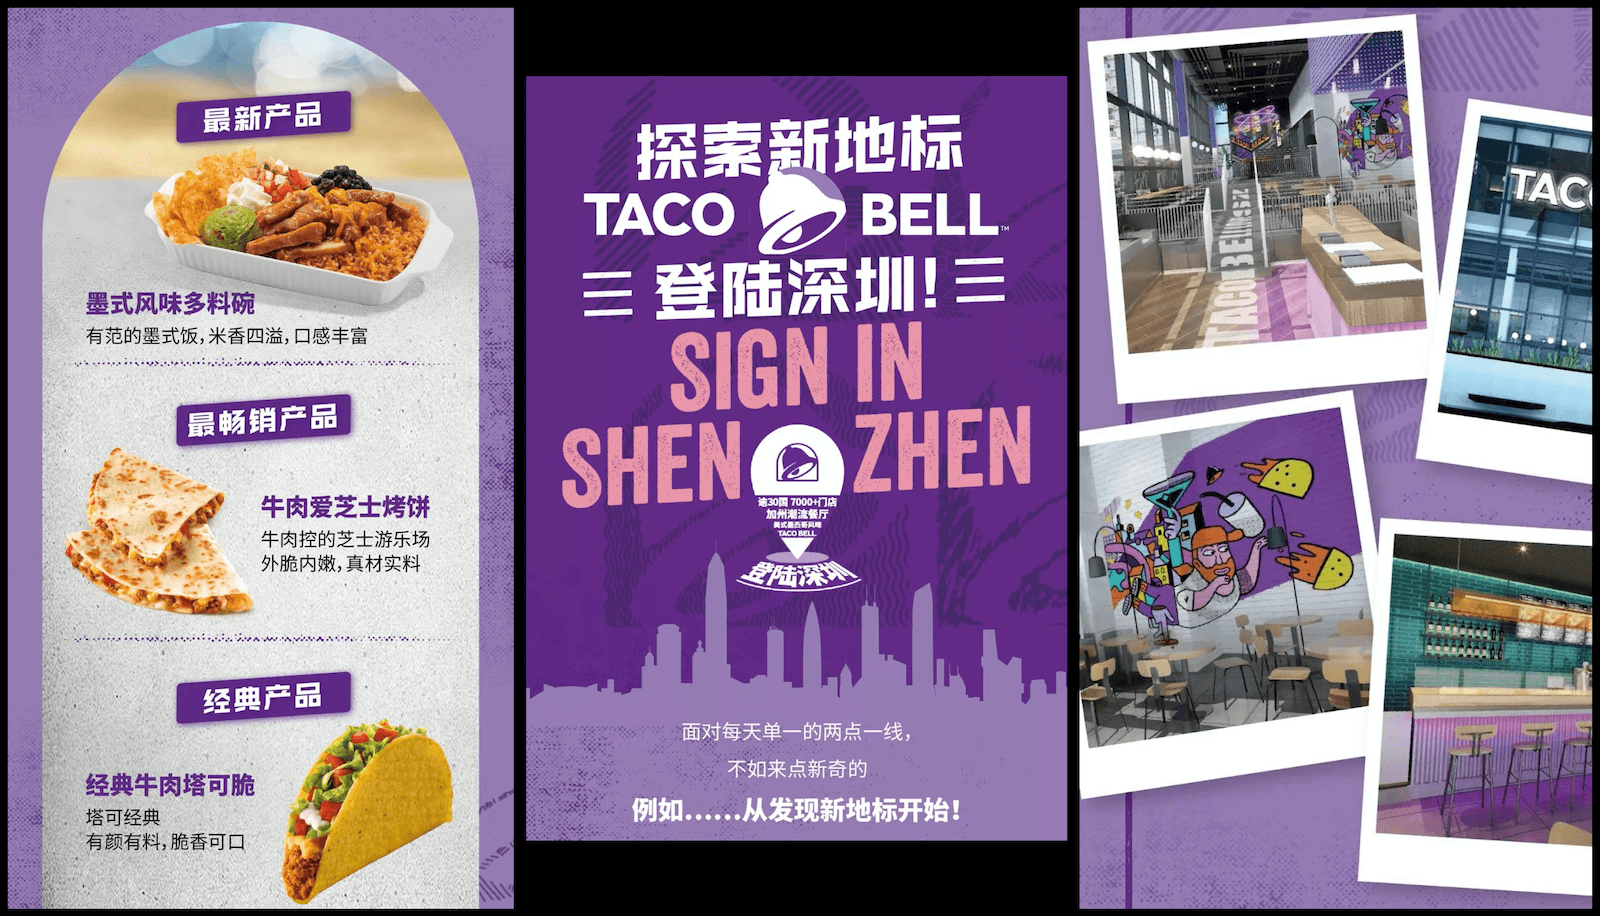 「TACO BELL」が深セン再上陸ーCOCO PARKに6月3日オープン!